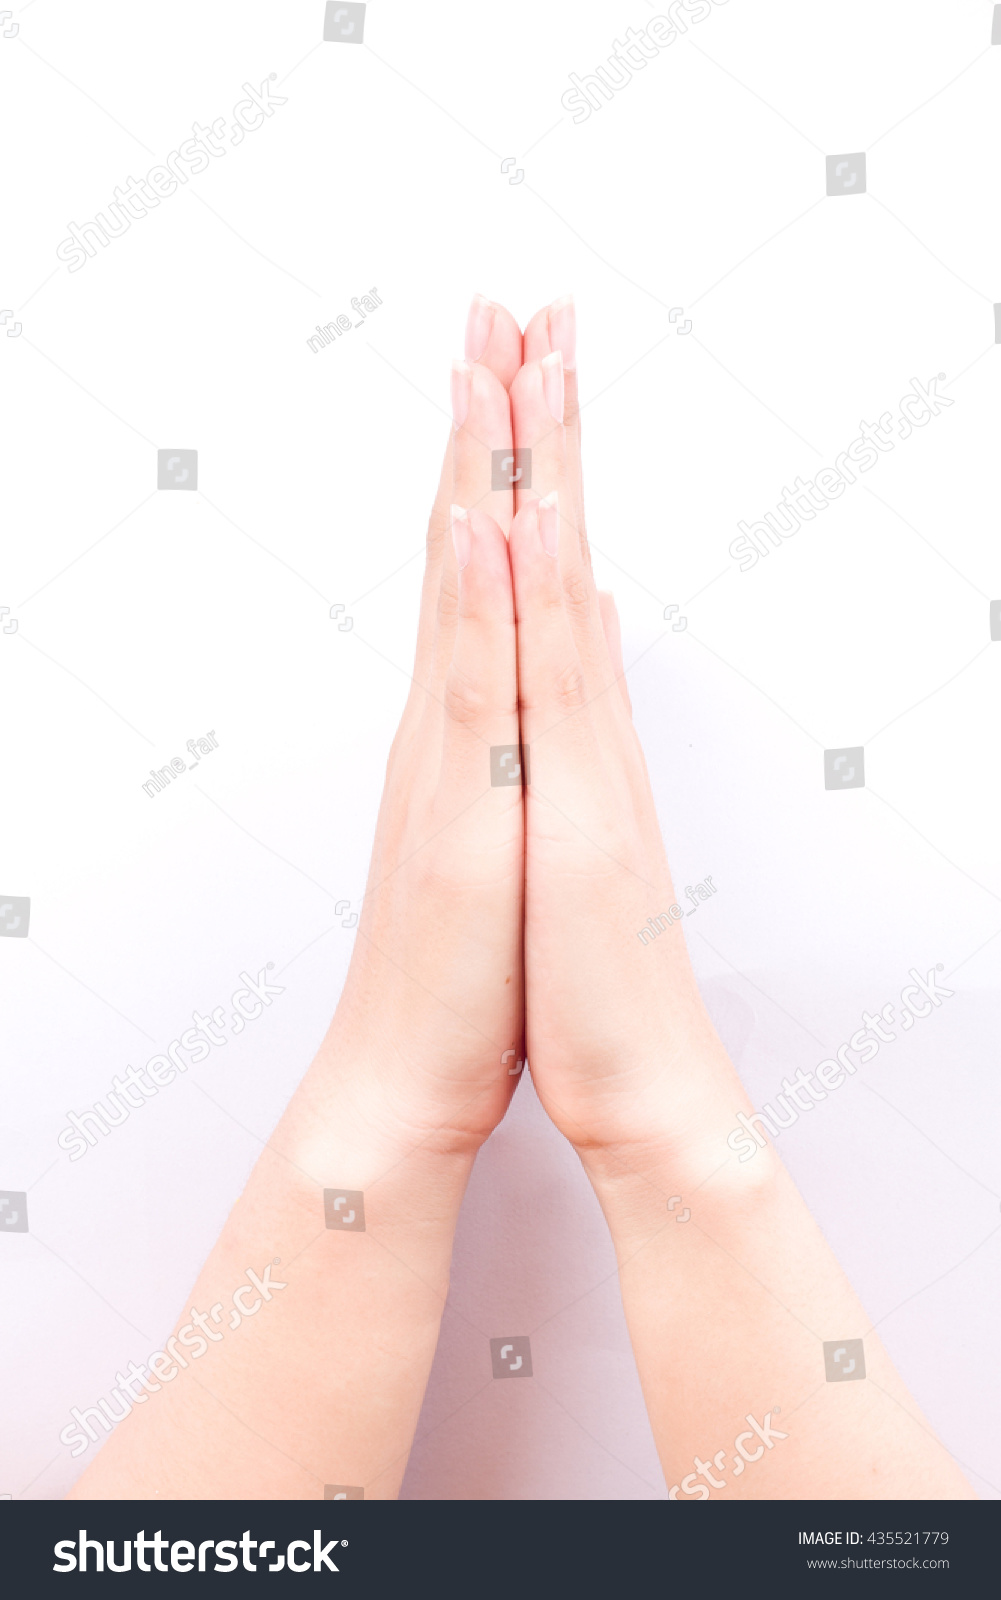 Finger hand girl symbols isolated concept stock photo 435521779 finger hand girl symbols isolated concept wai is the traditional thai greeting on white background kristyandbryce Images